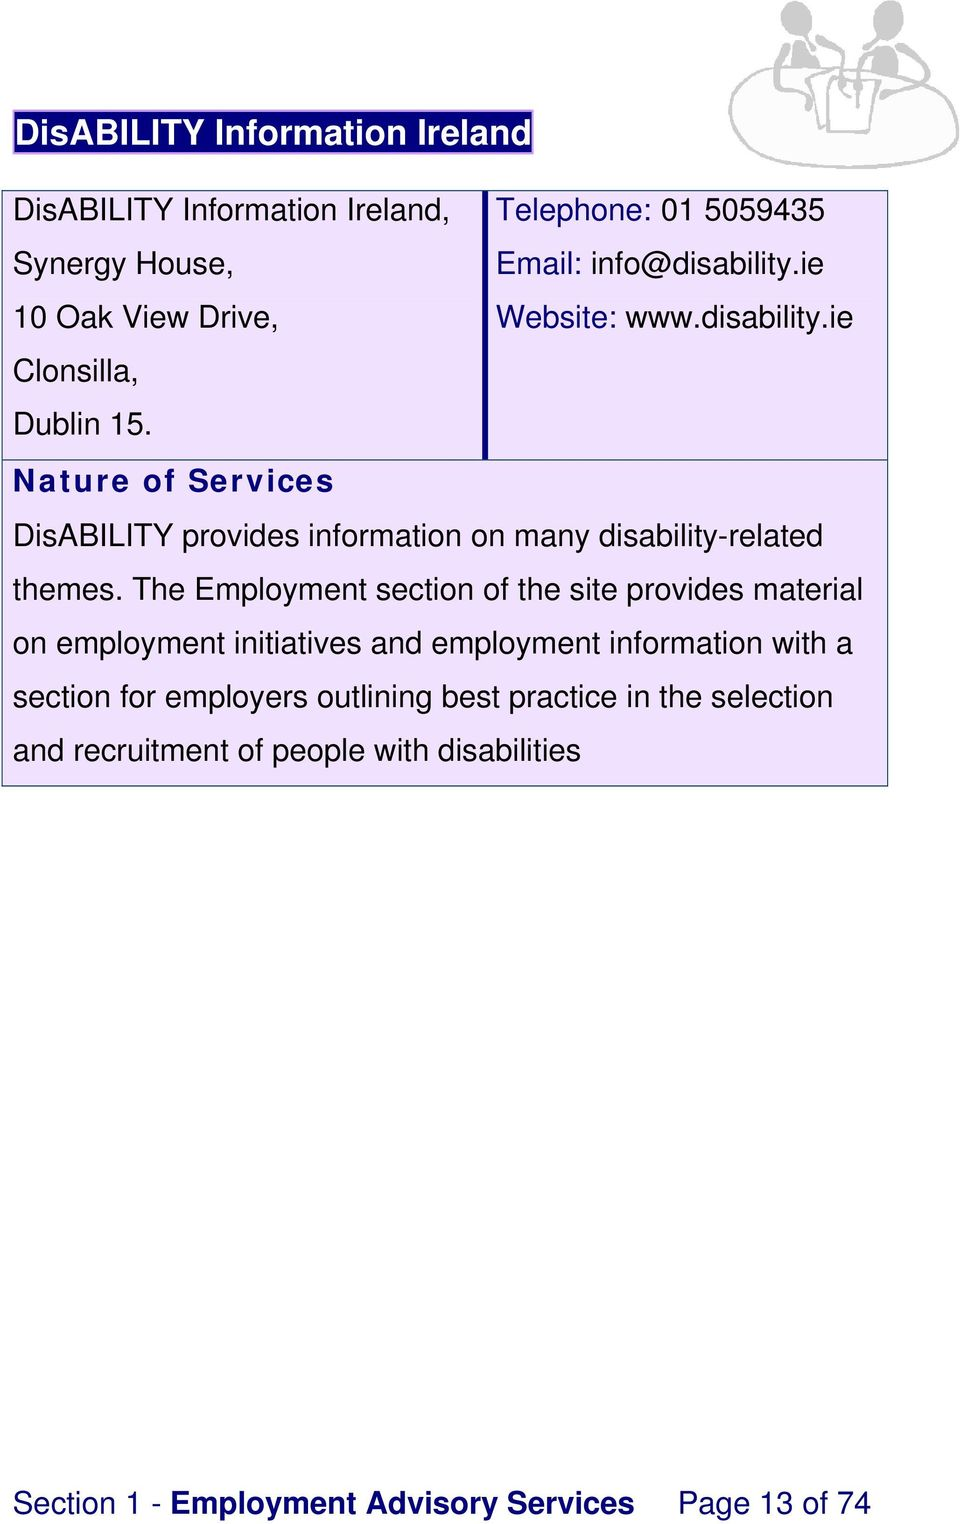 DisABILITY provides information on many disability-related themes.